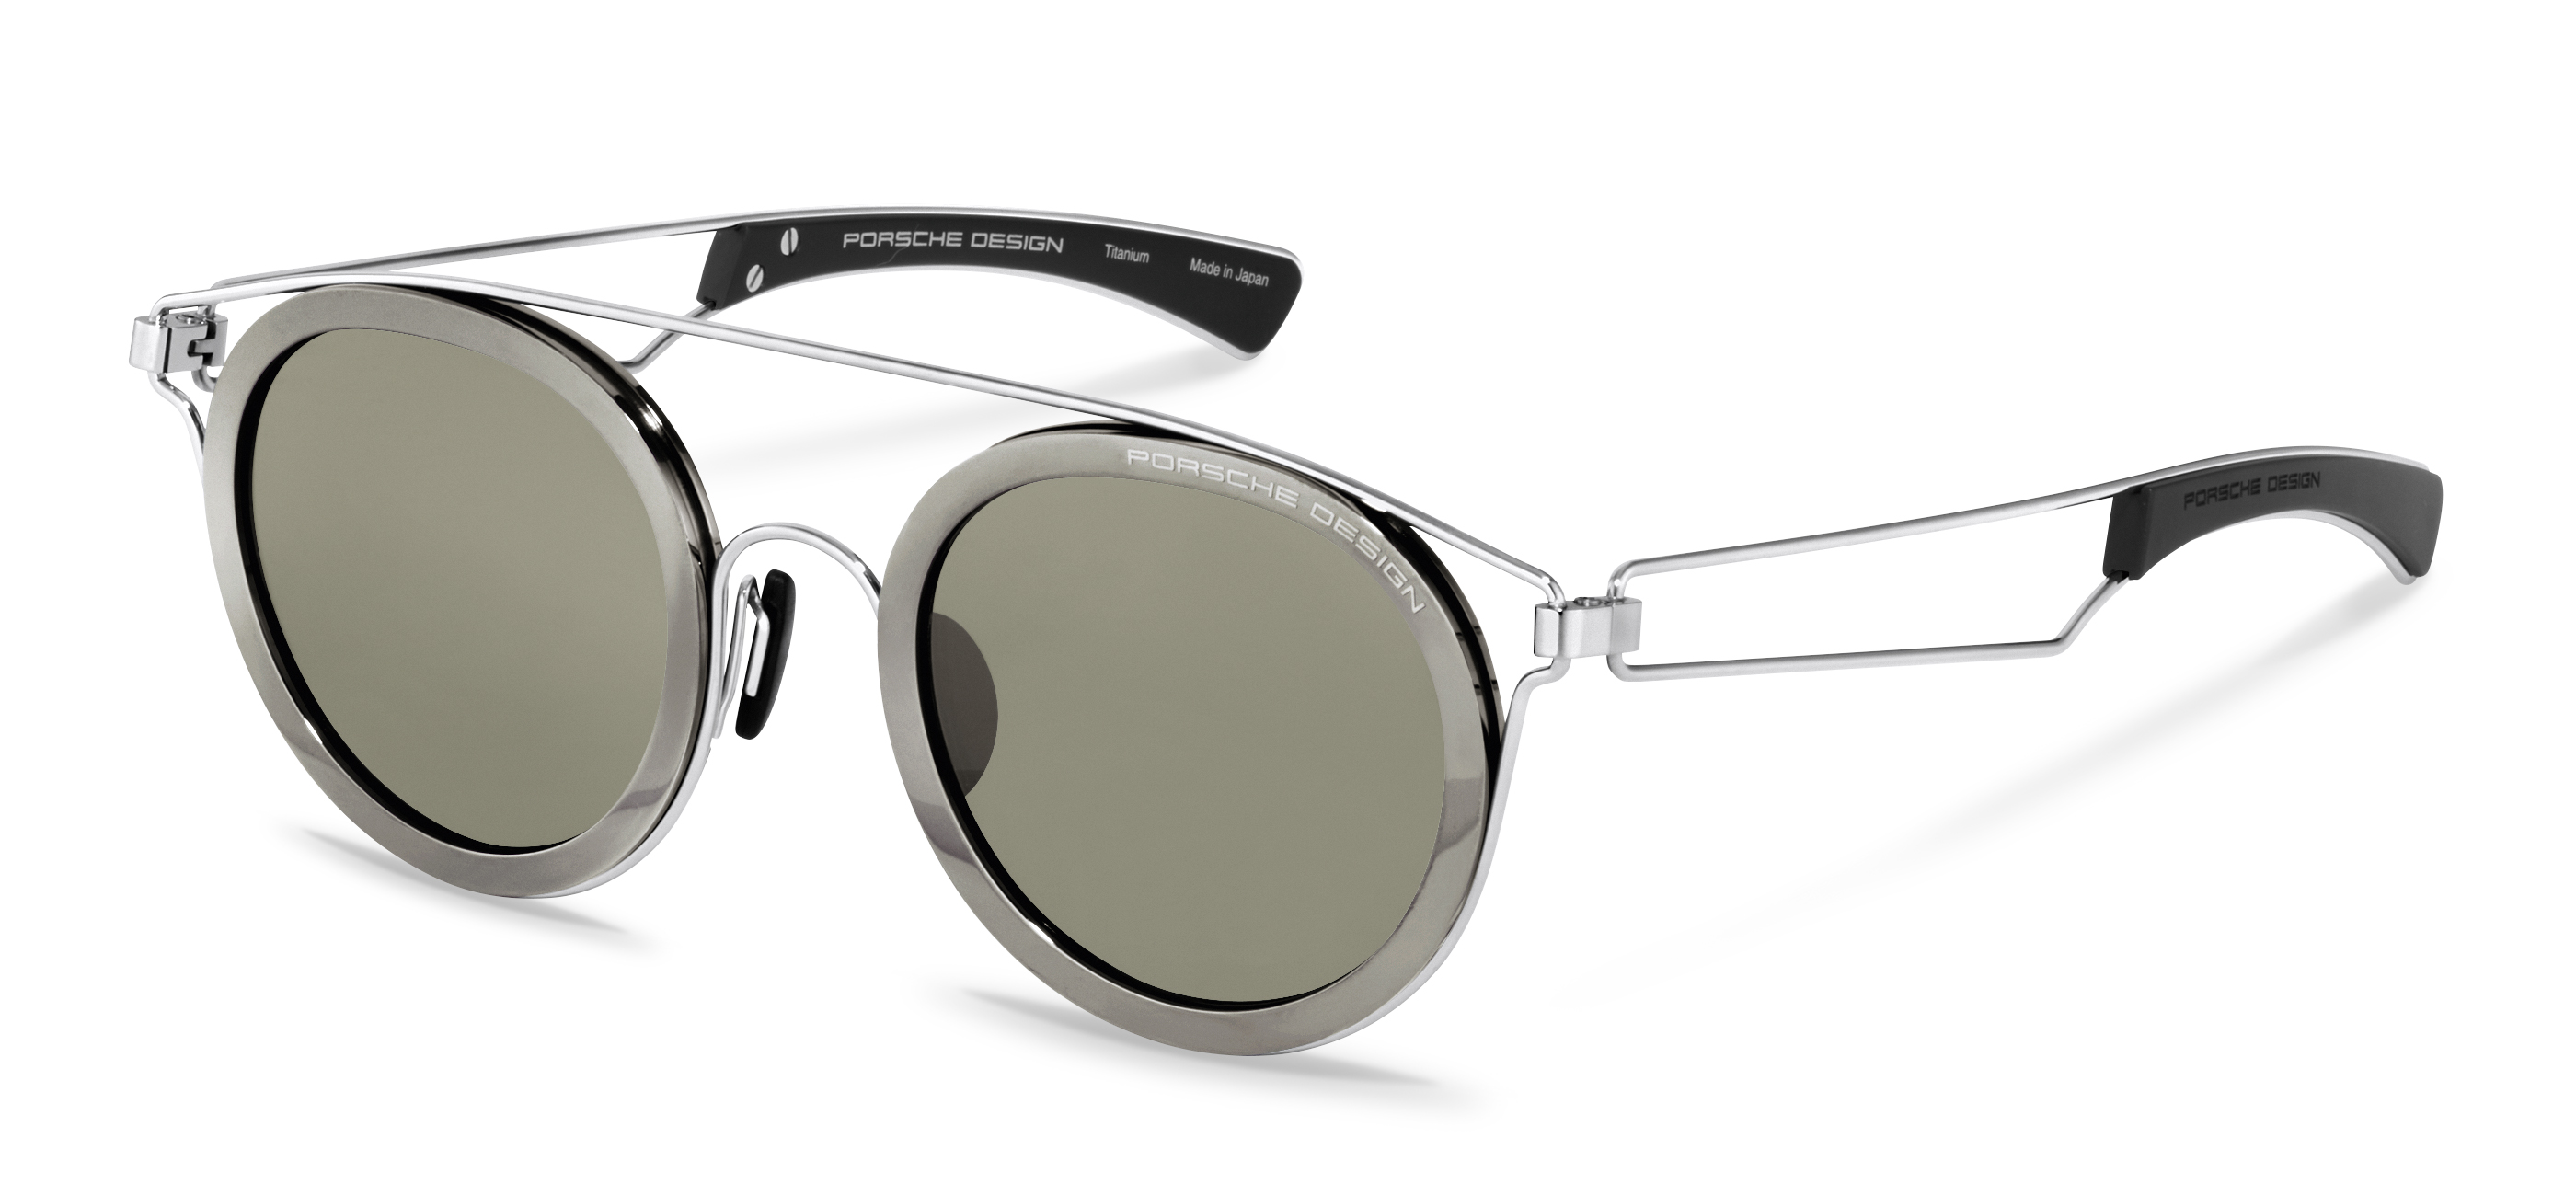 Porsche Design-Sunglasses-P8924-palladium